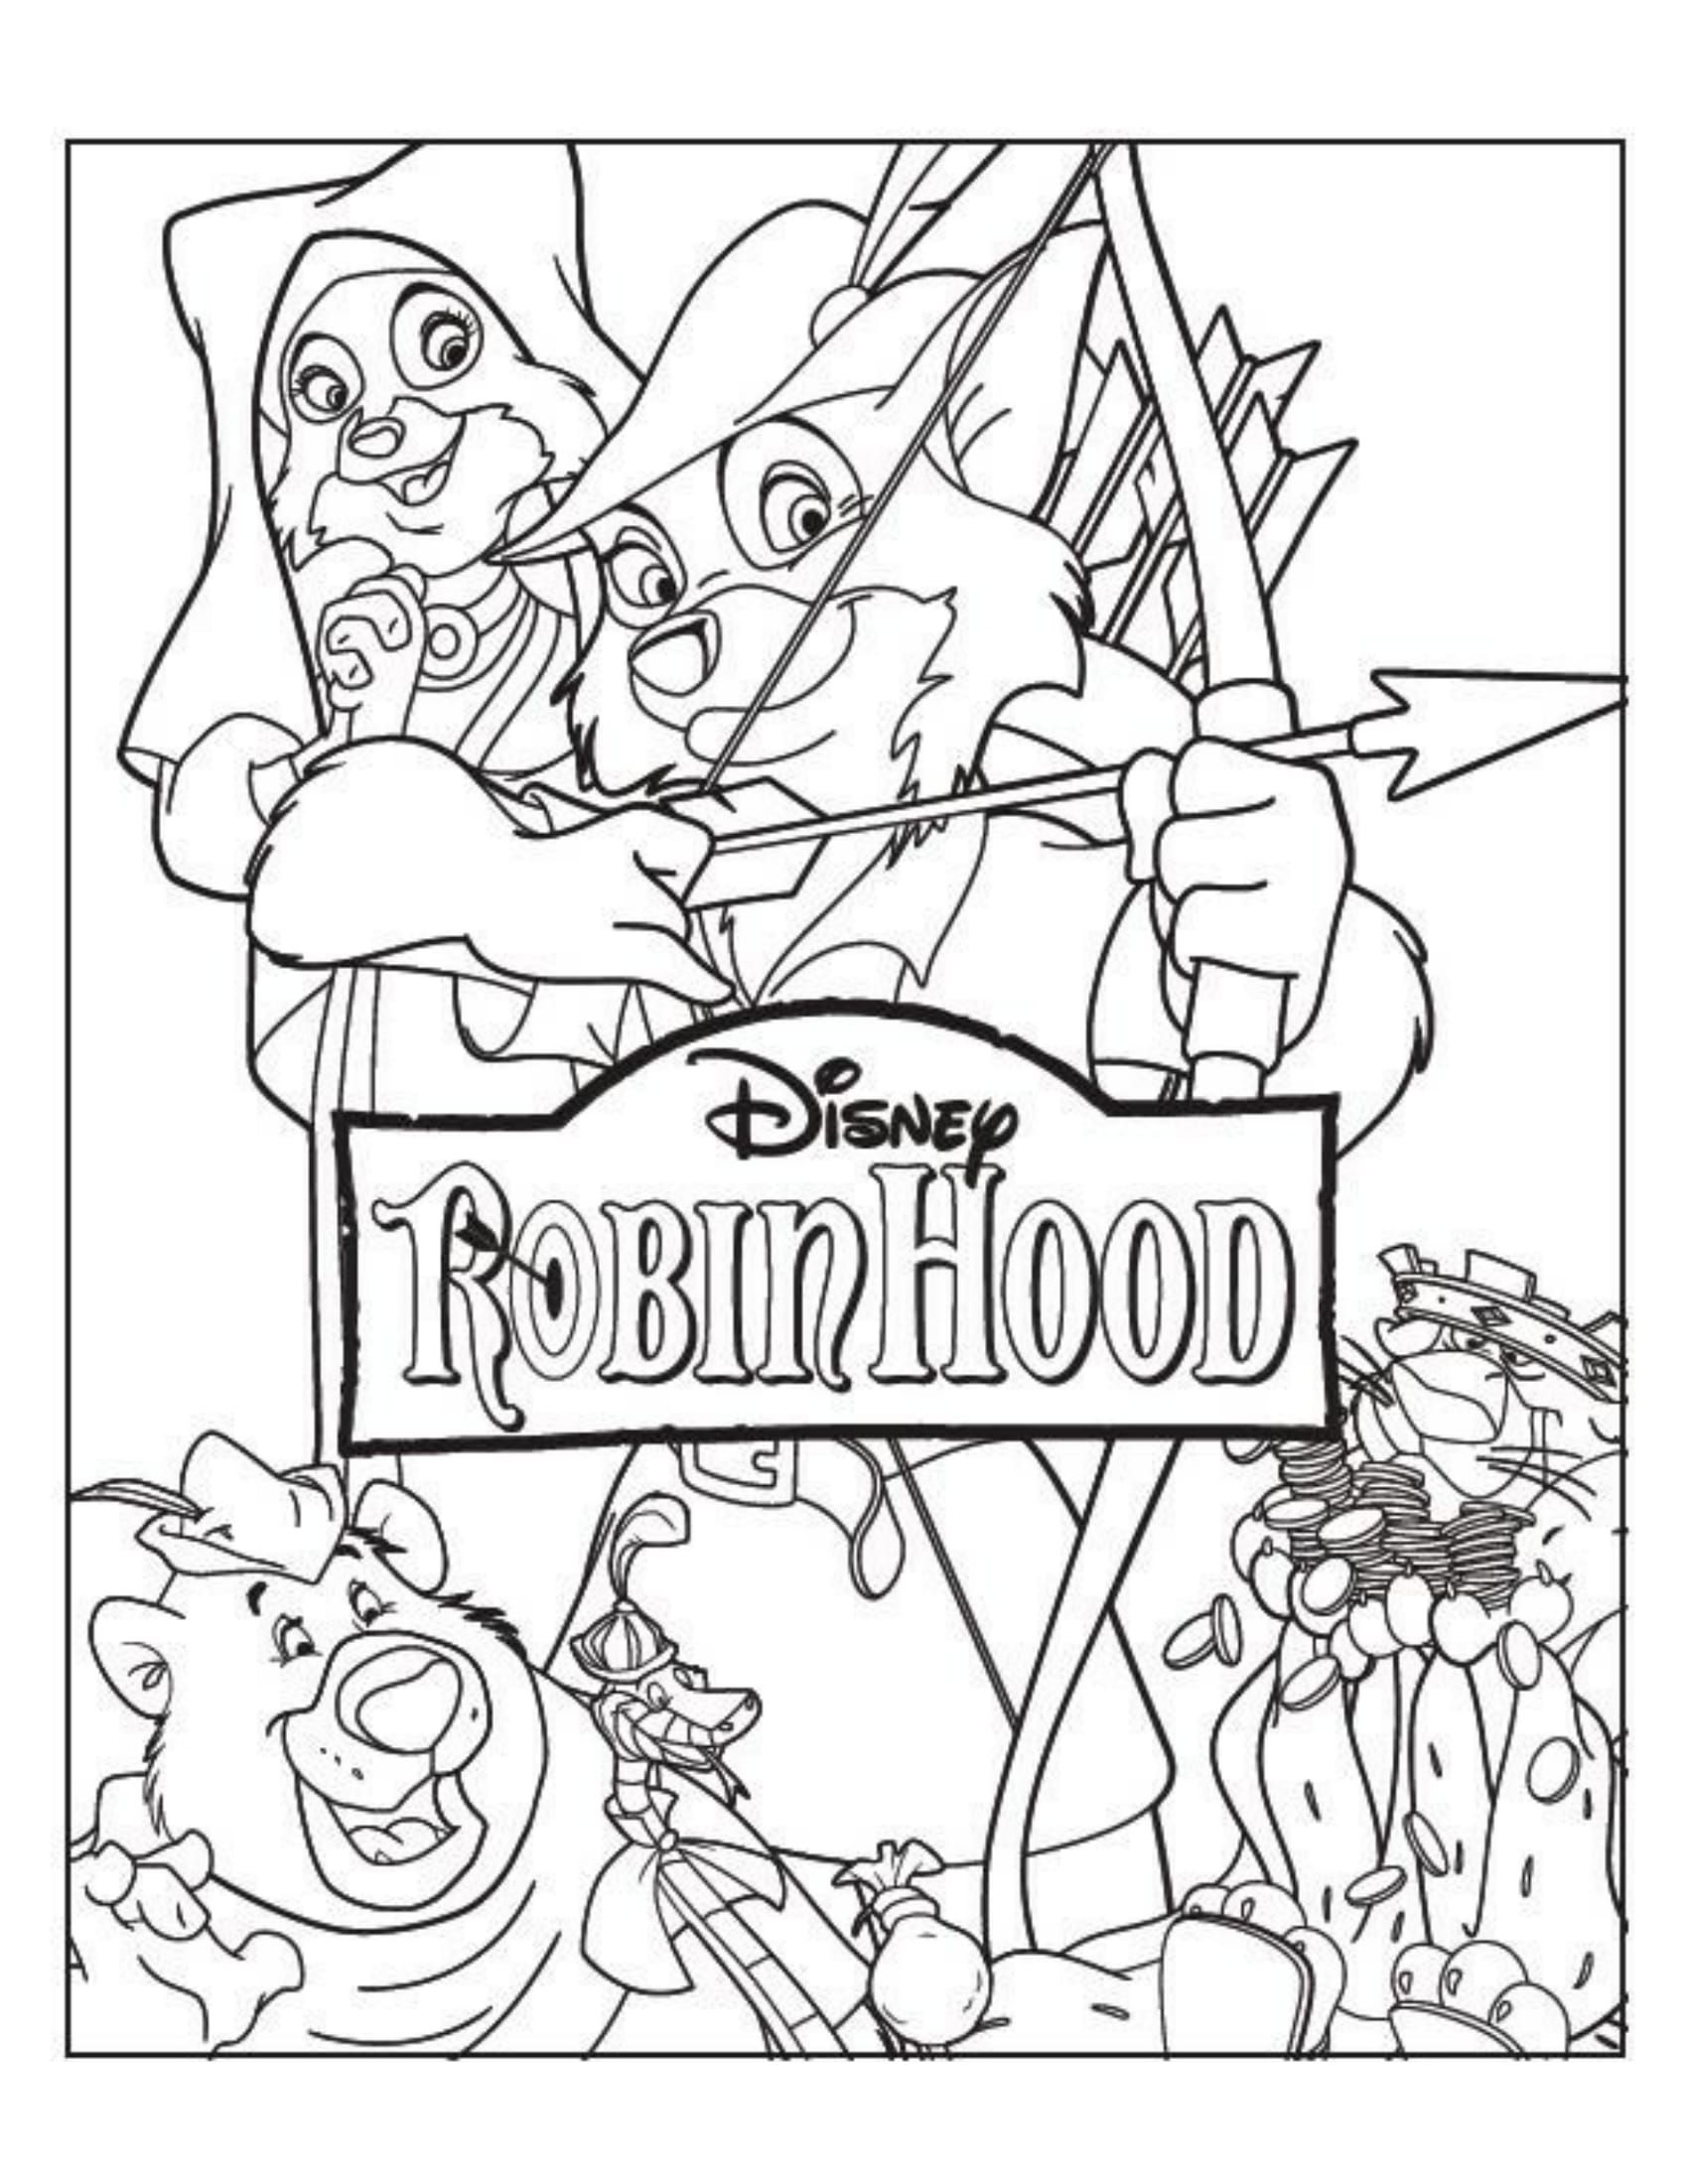 Robin Hood Disney Coloring Pages Coloring Pages Disney Mural